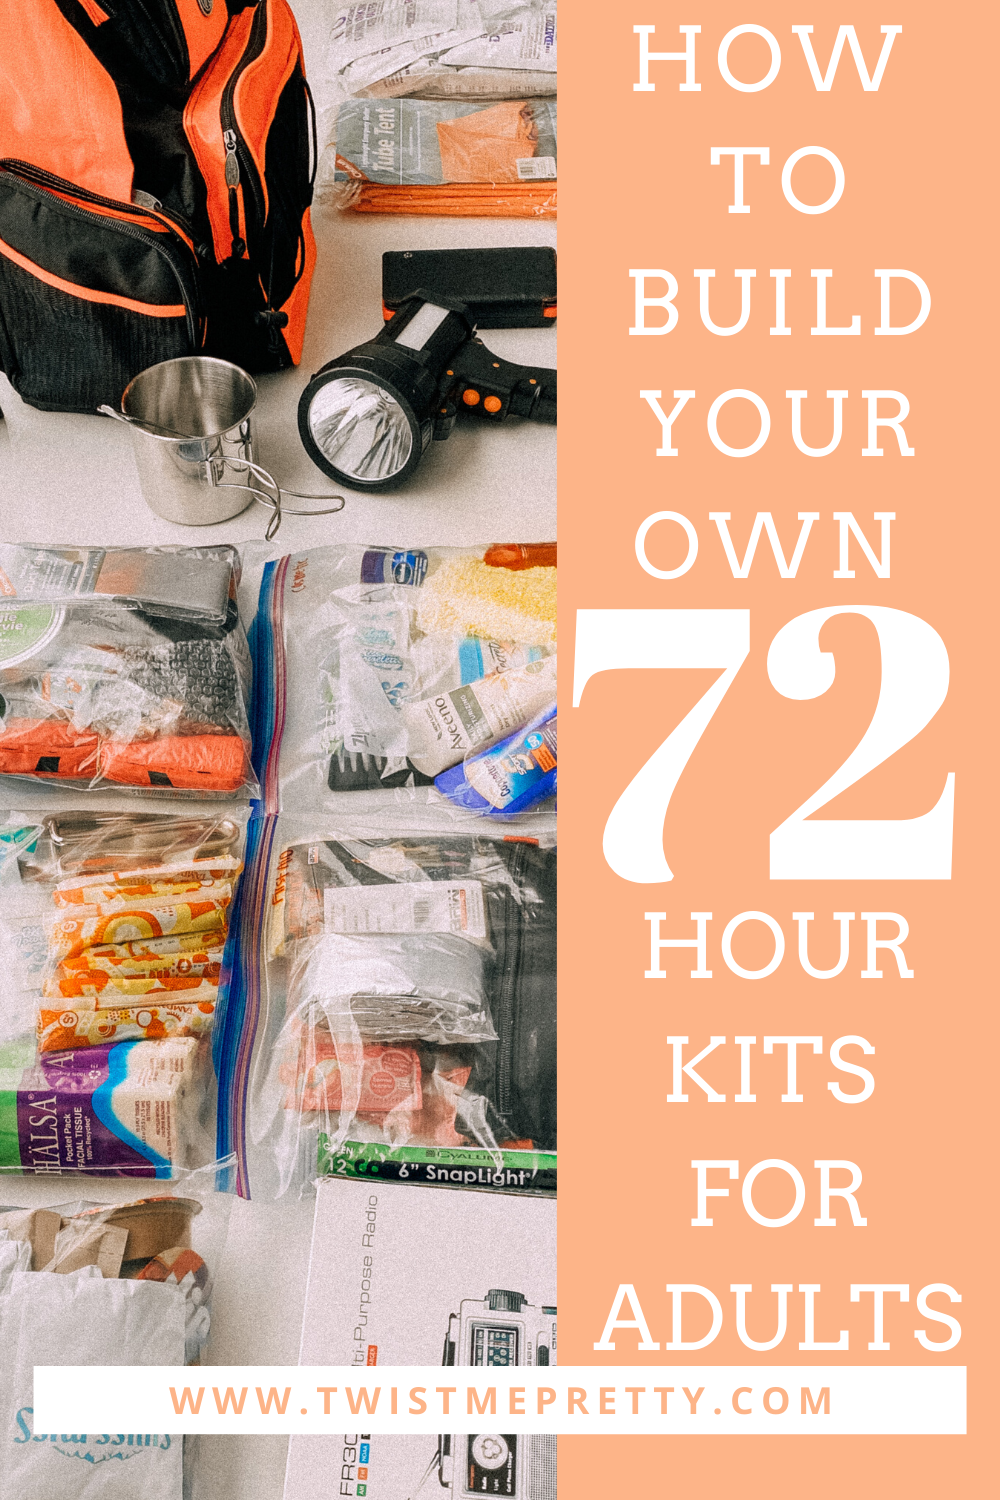 How to build your own 72 hour kits for adults. www.twistmepretty.com